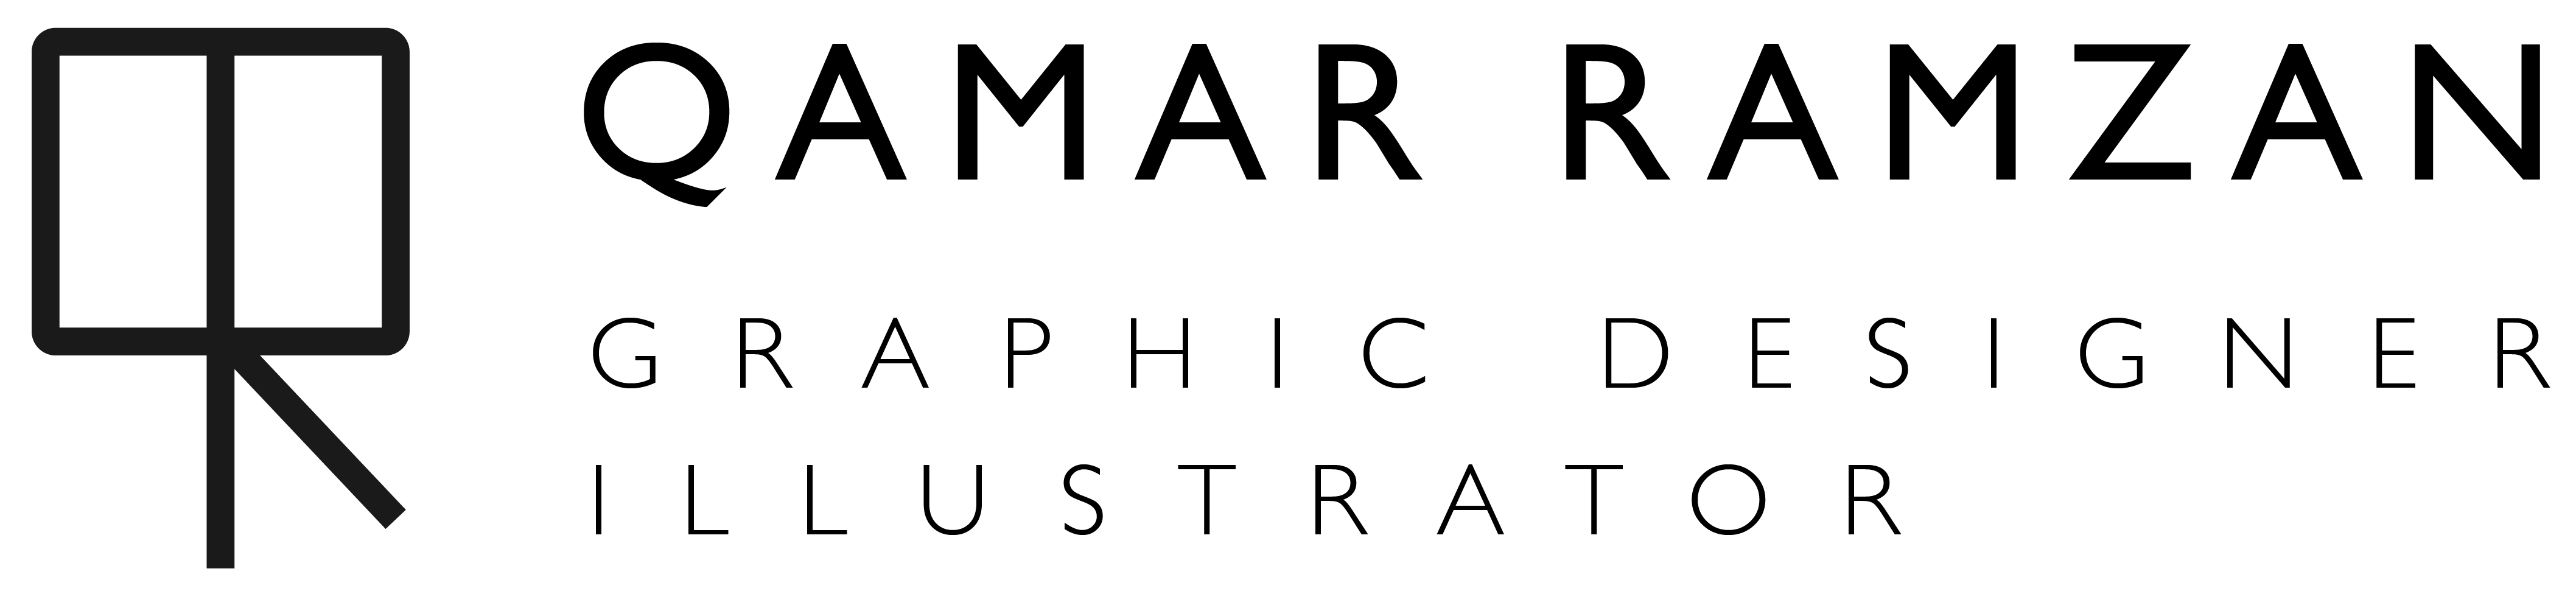 qamar-ramzan-graphic-designer-illustrator-based-in-london